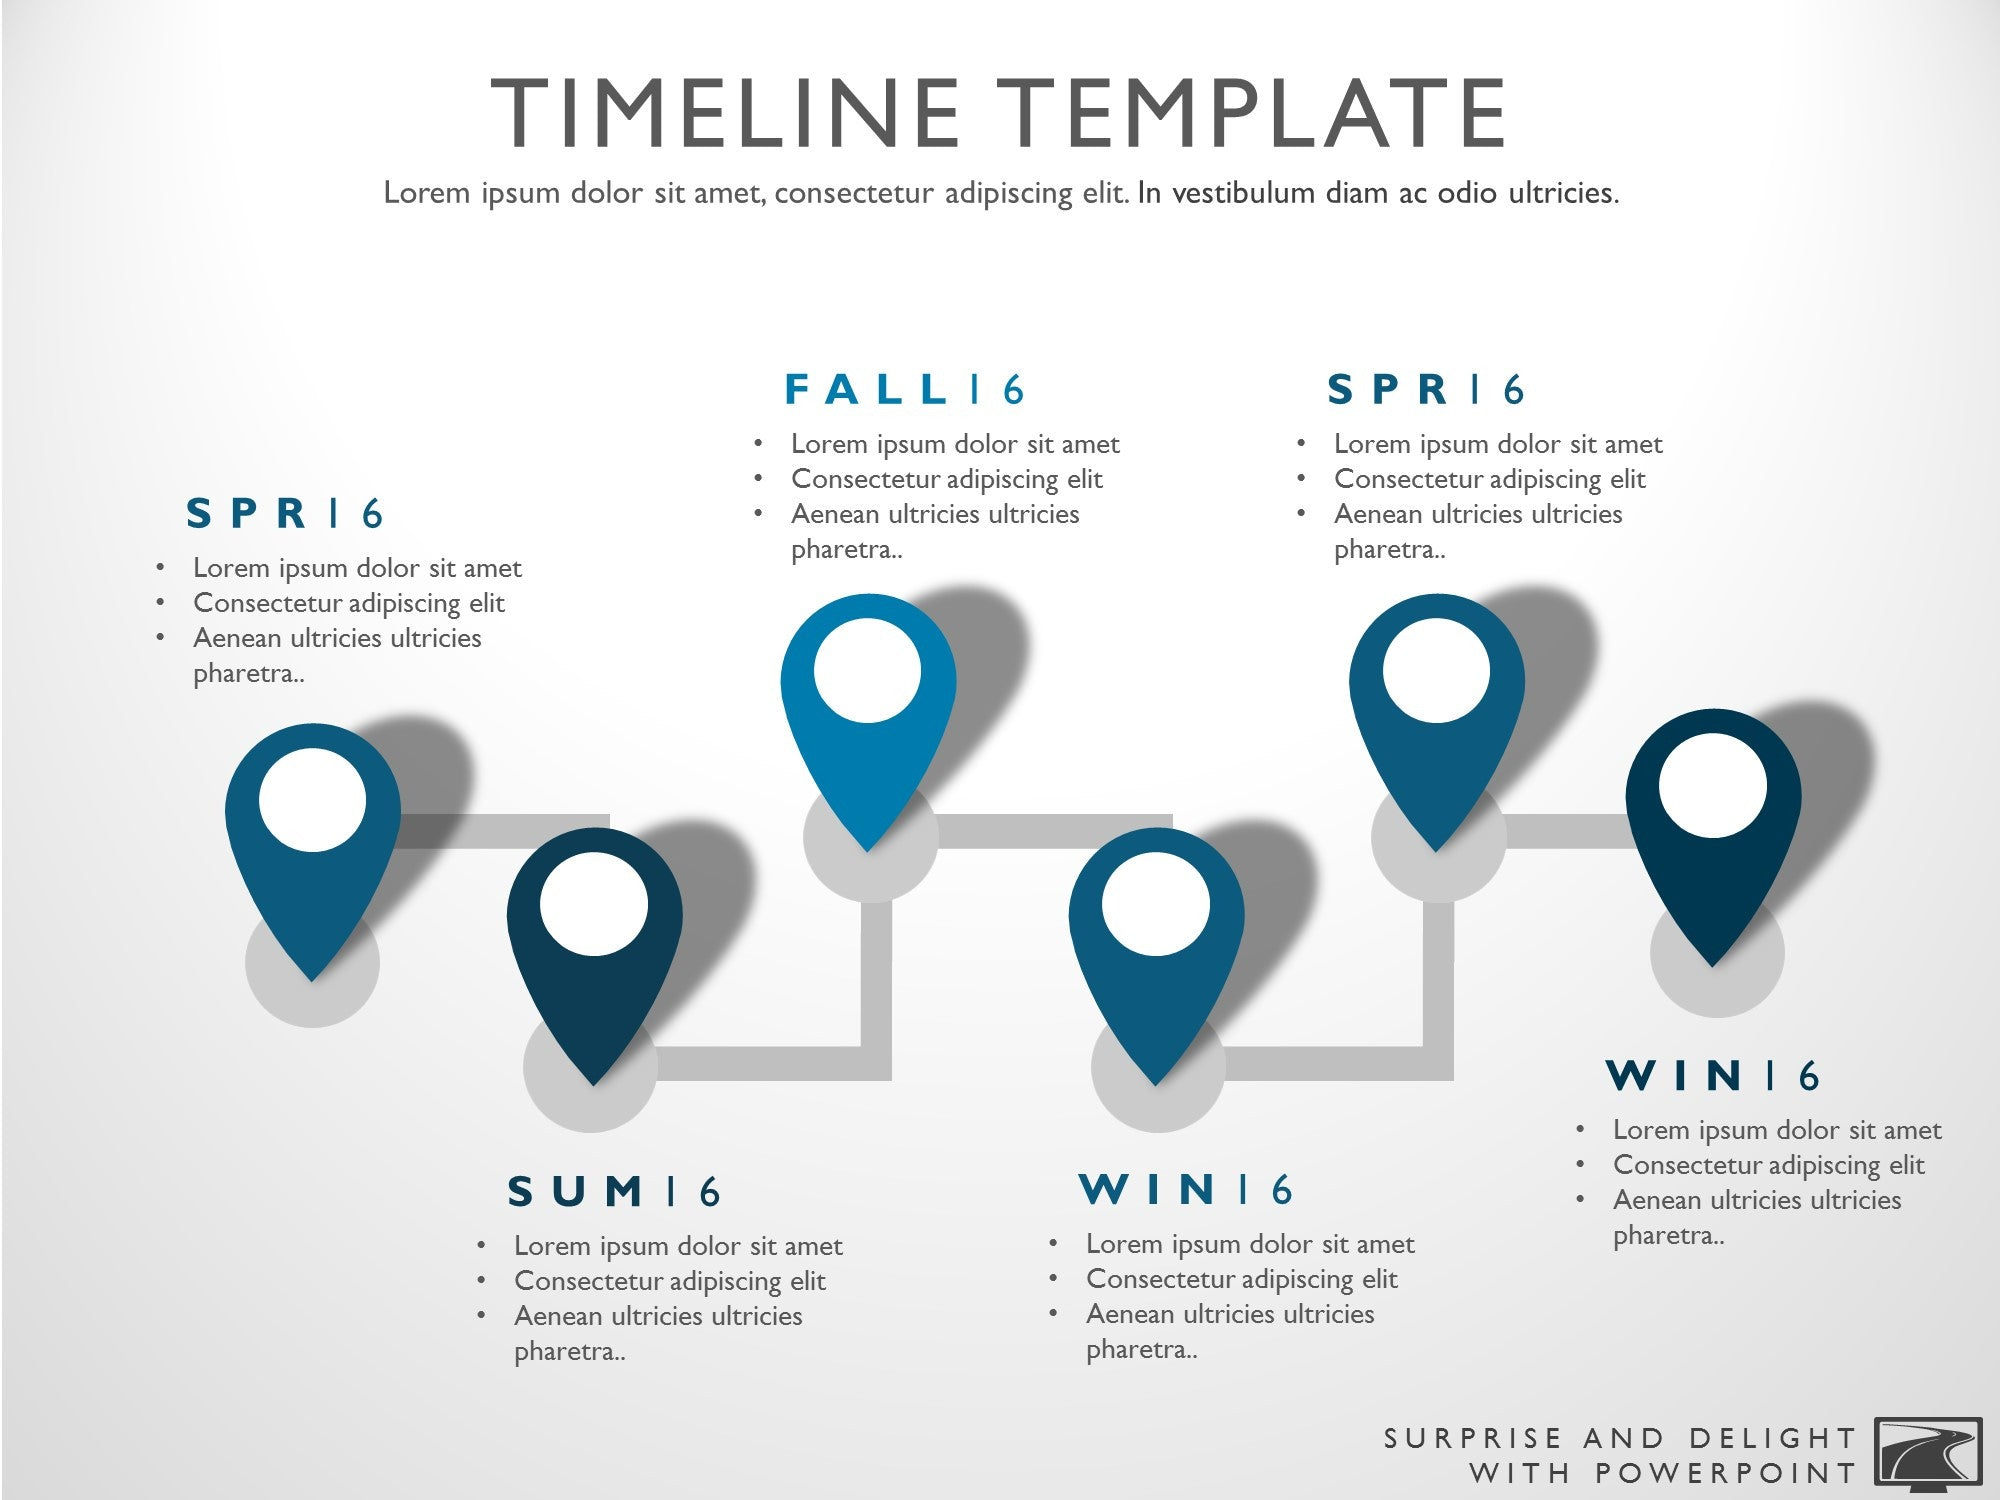 Six Phase Powerpoint Timeline Graphic My Product Roadmap - Timeline graphic template